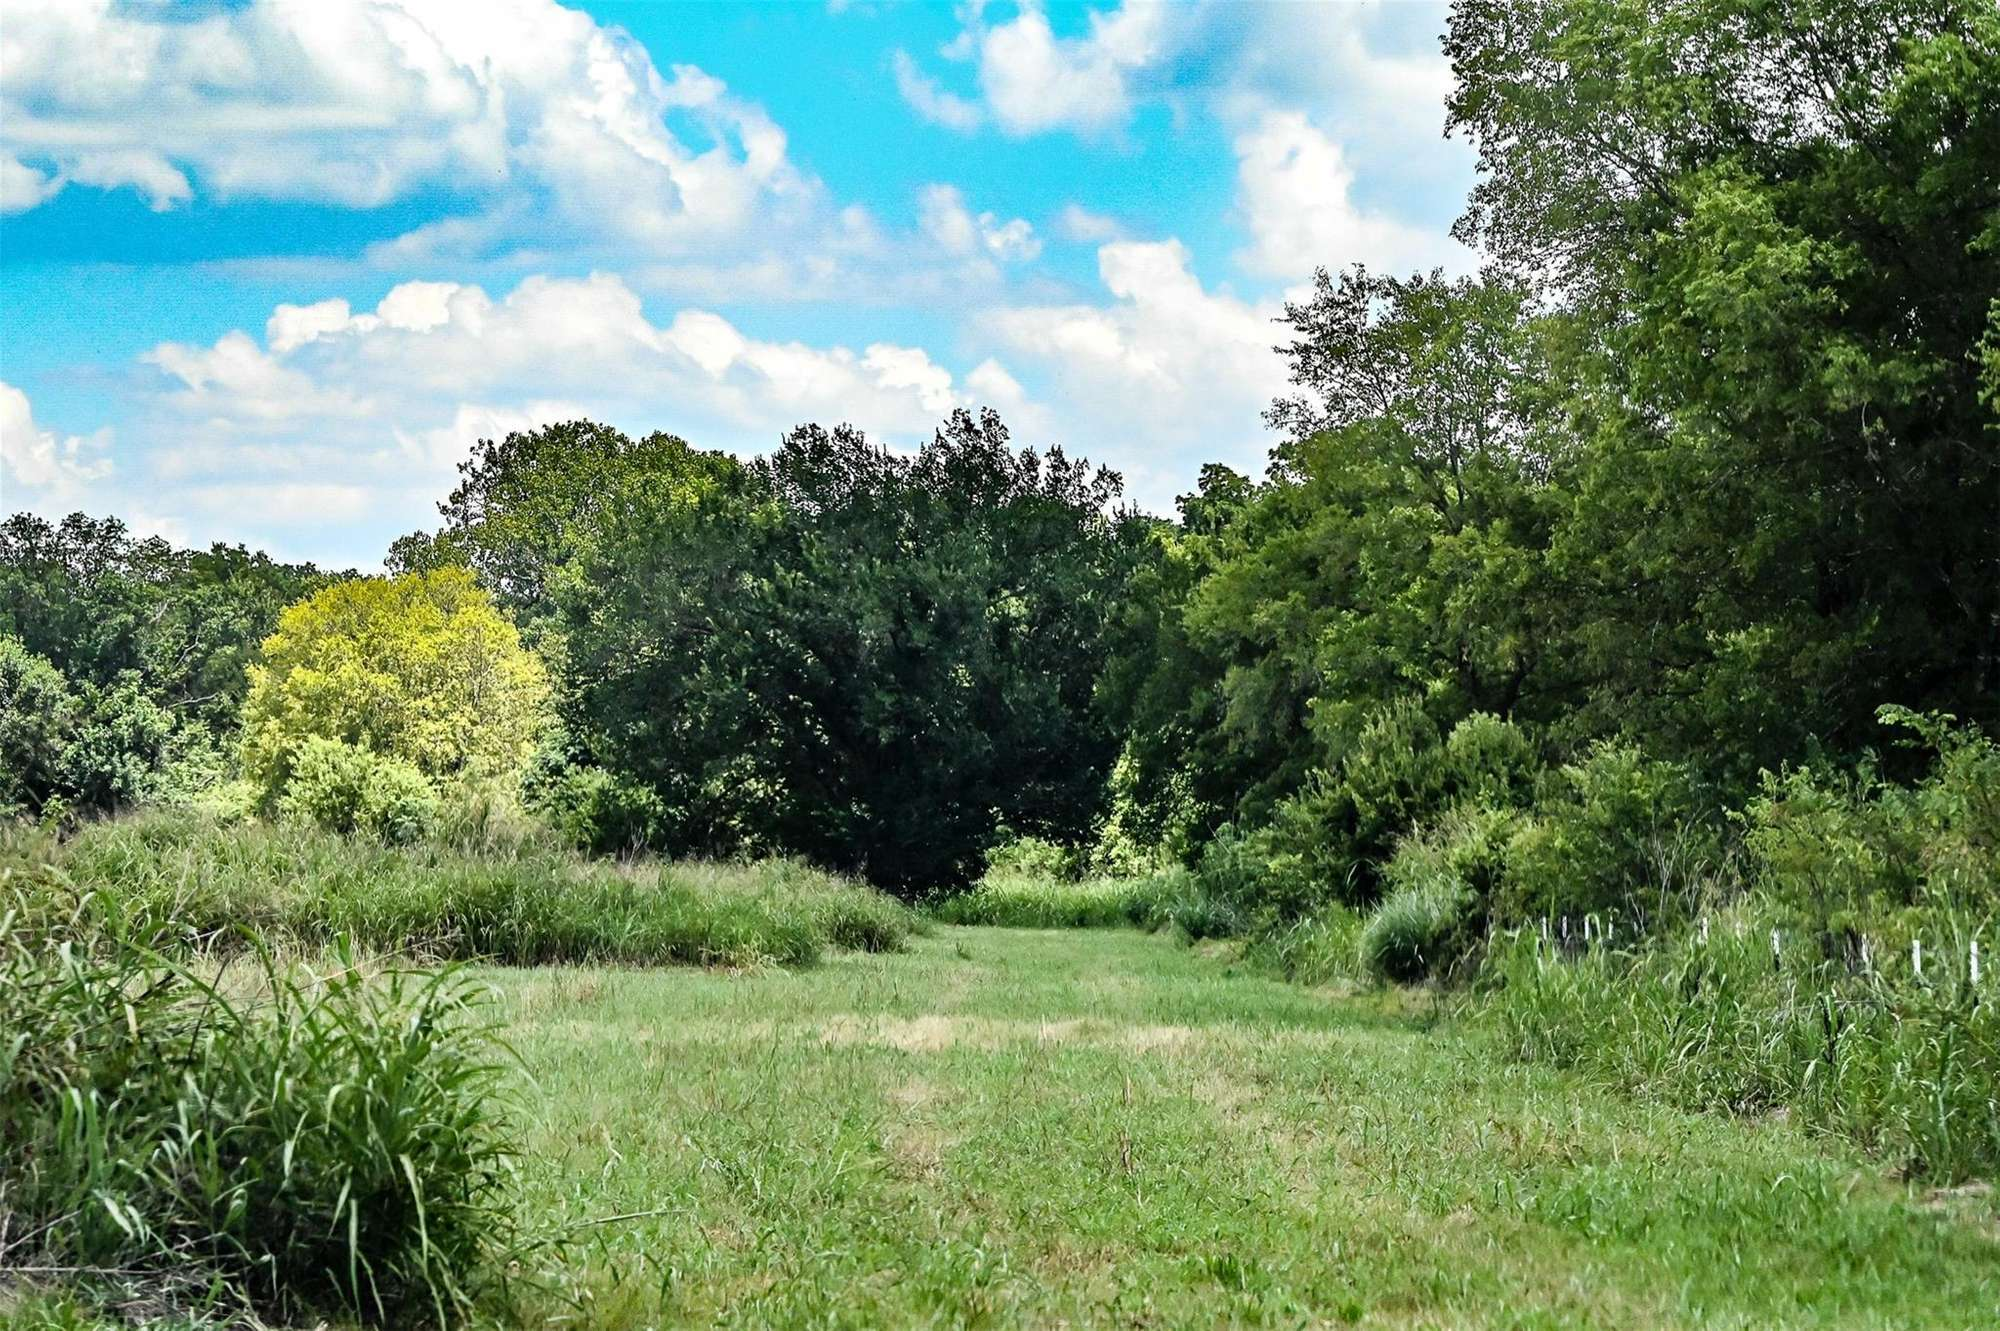 139 acre investment property in Ellis County TX, hunting, farming, off roading